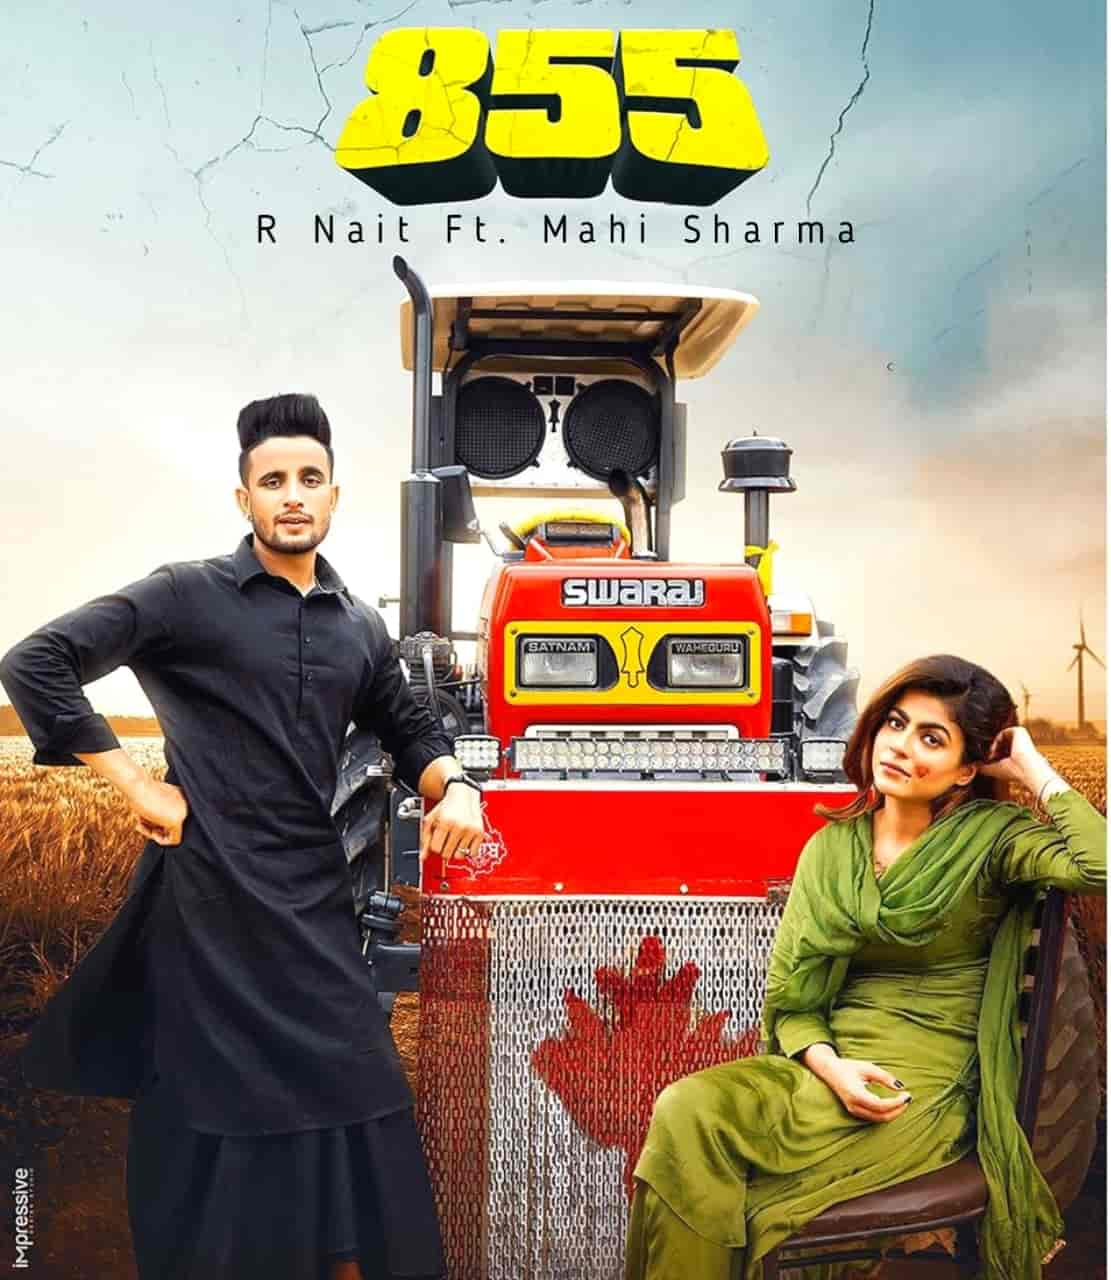 855 Punjabi Song Image Features R Nait and Mahi Sharma